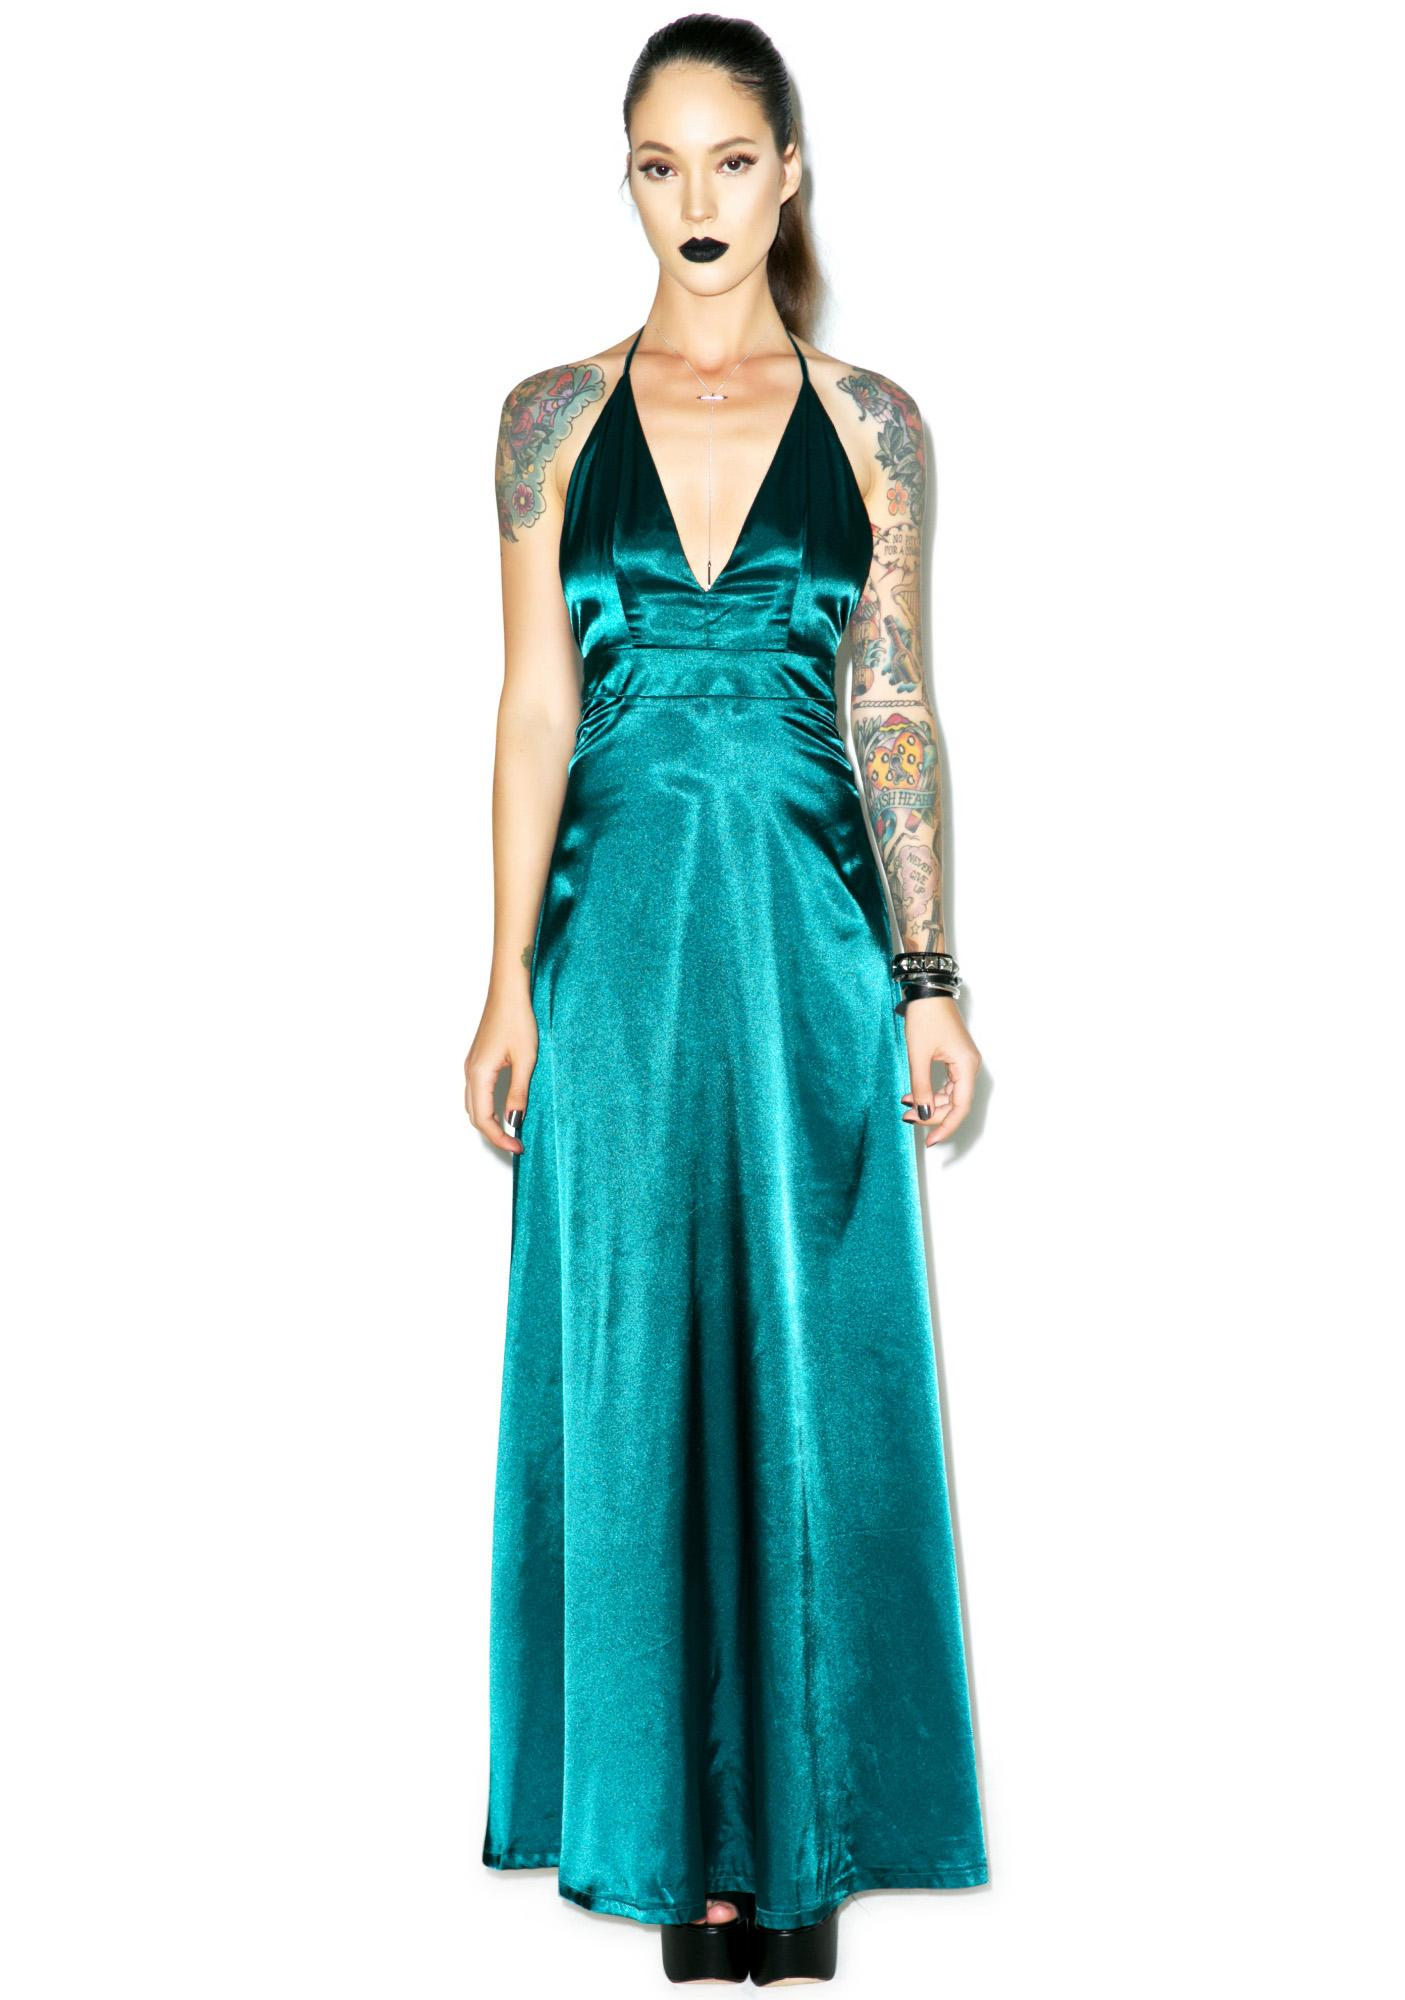 Emerald City Maxi Dress | Dolls Kill